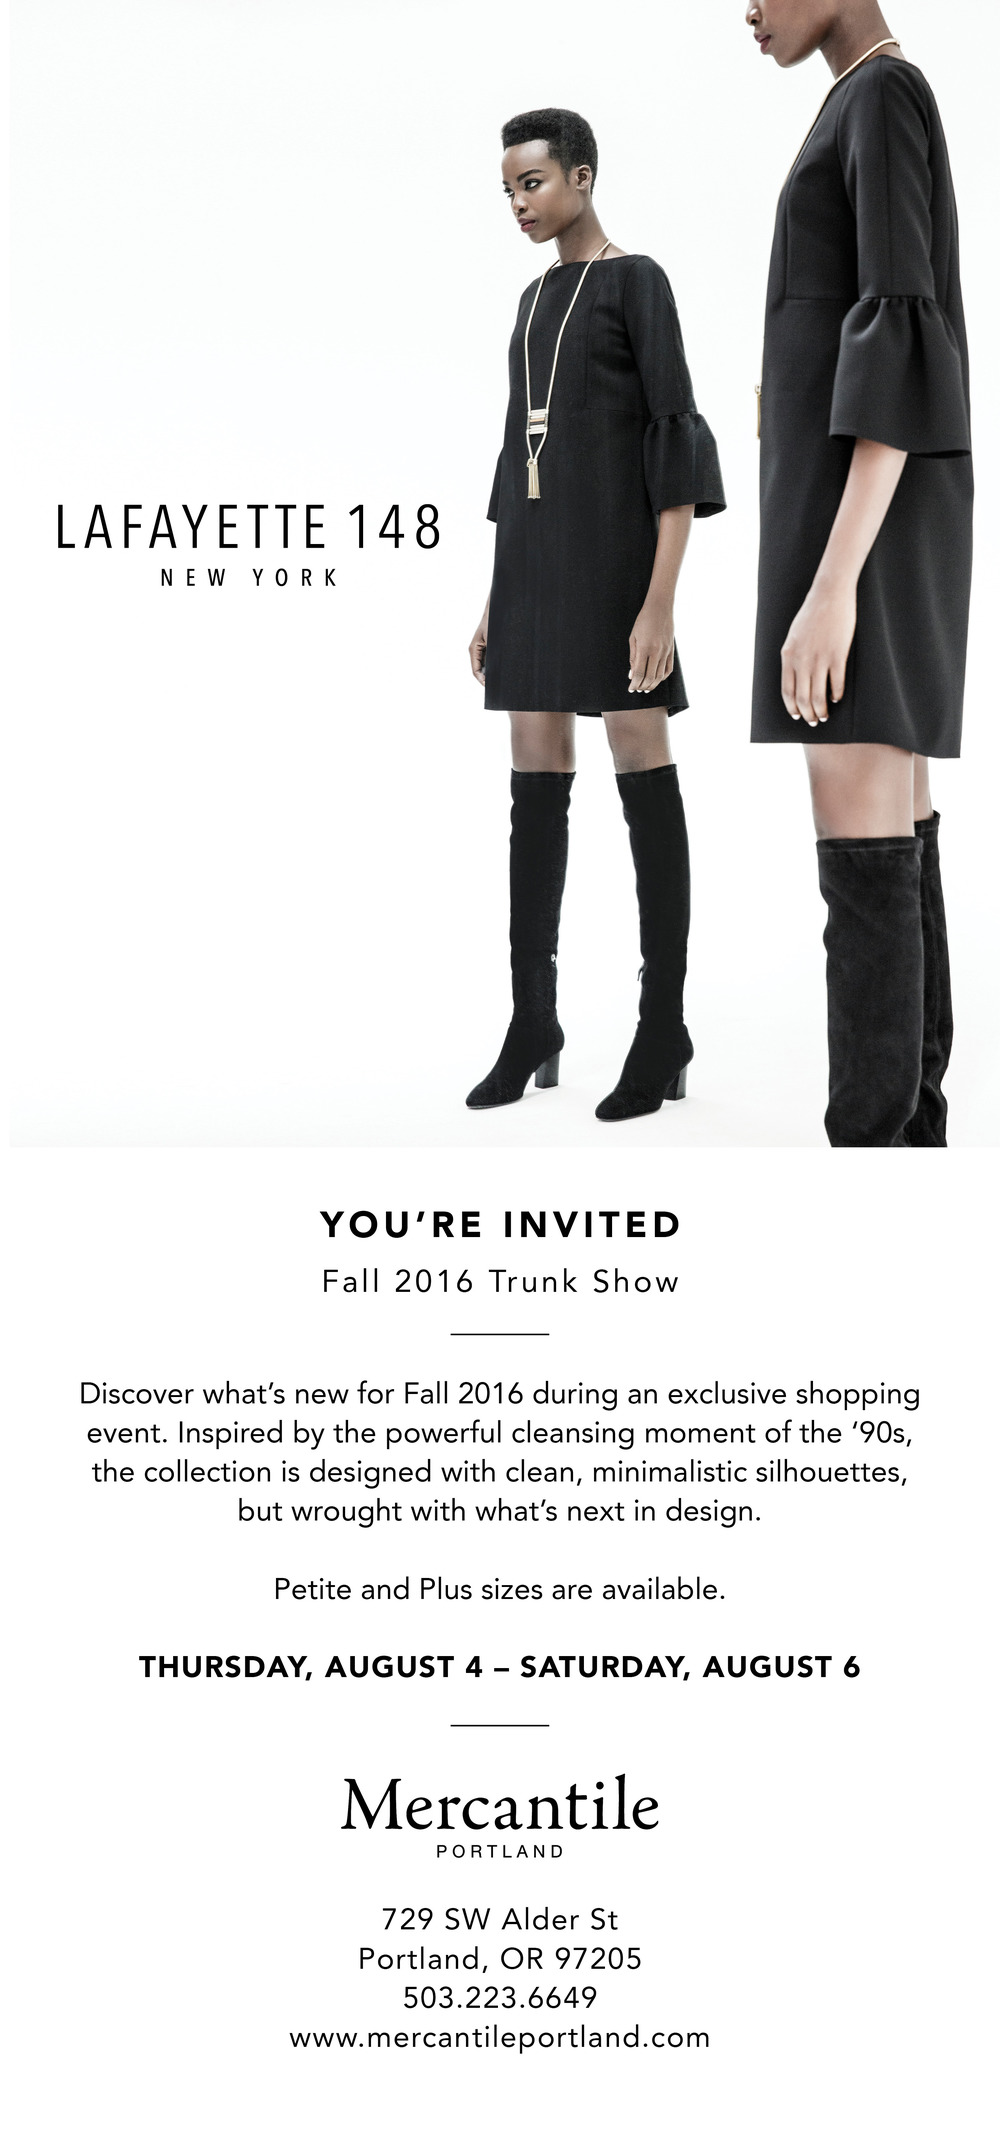 Lafayette 148 NY Fall 2016 Trunk Show